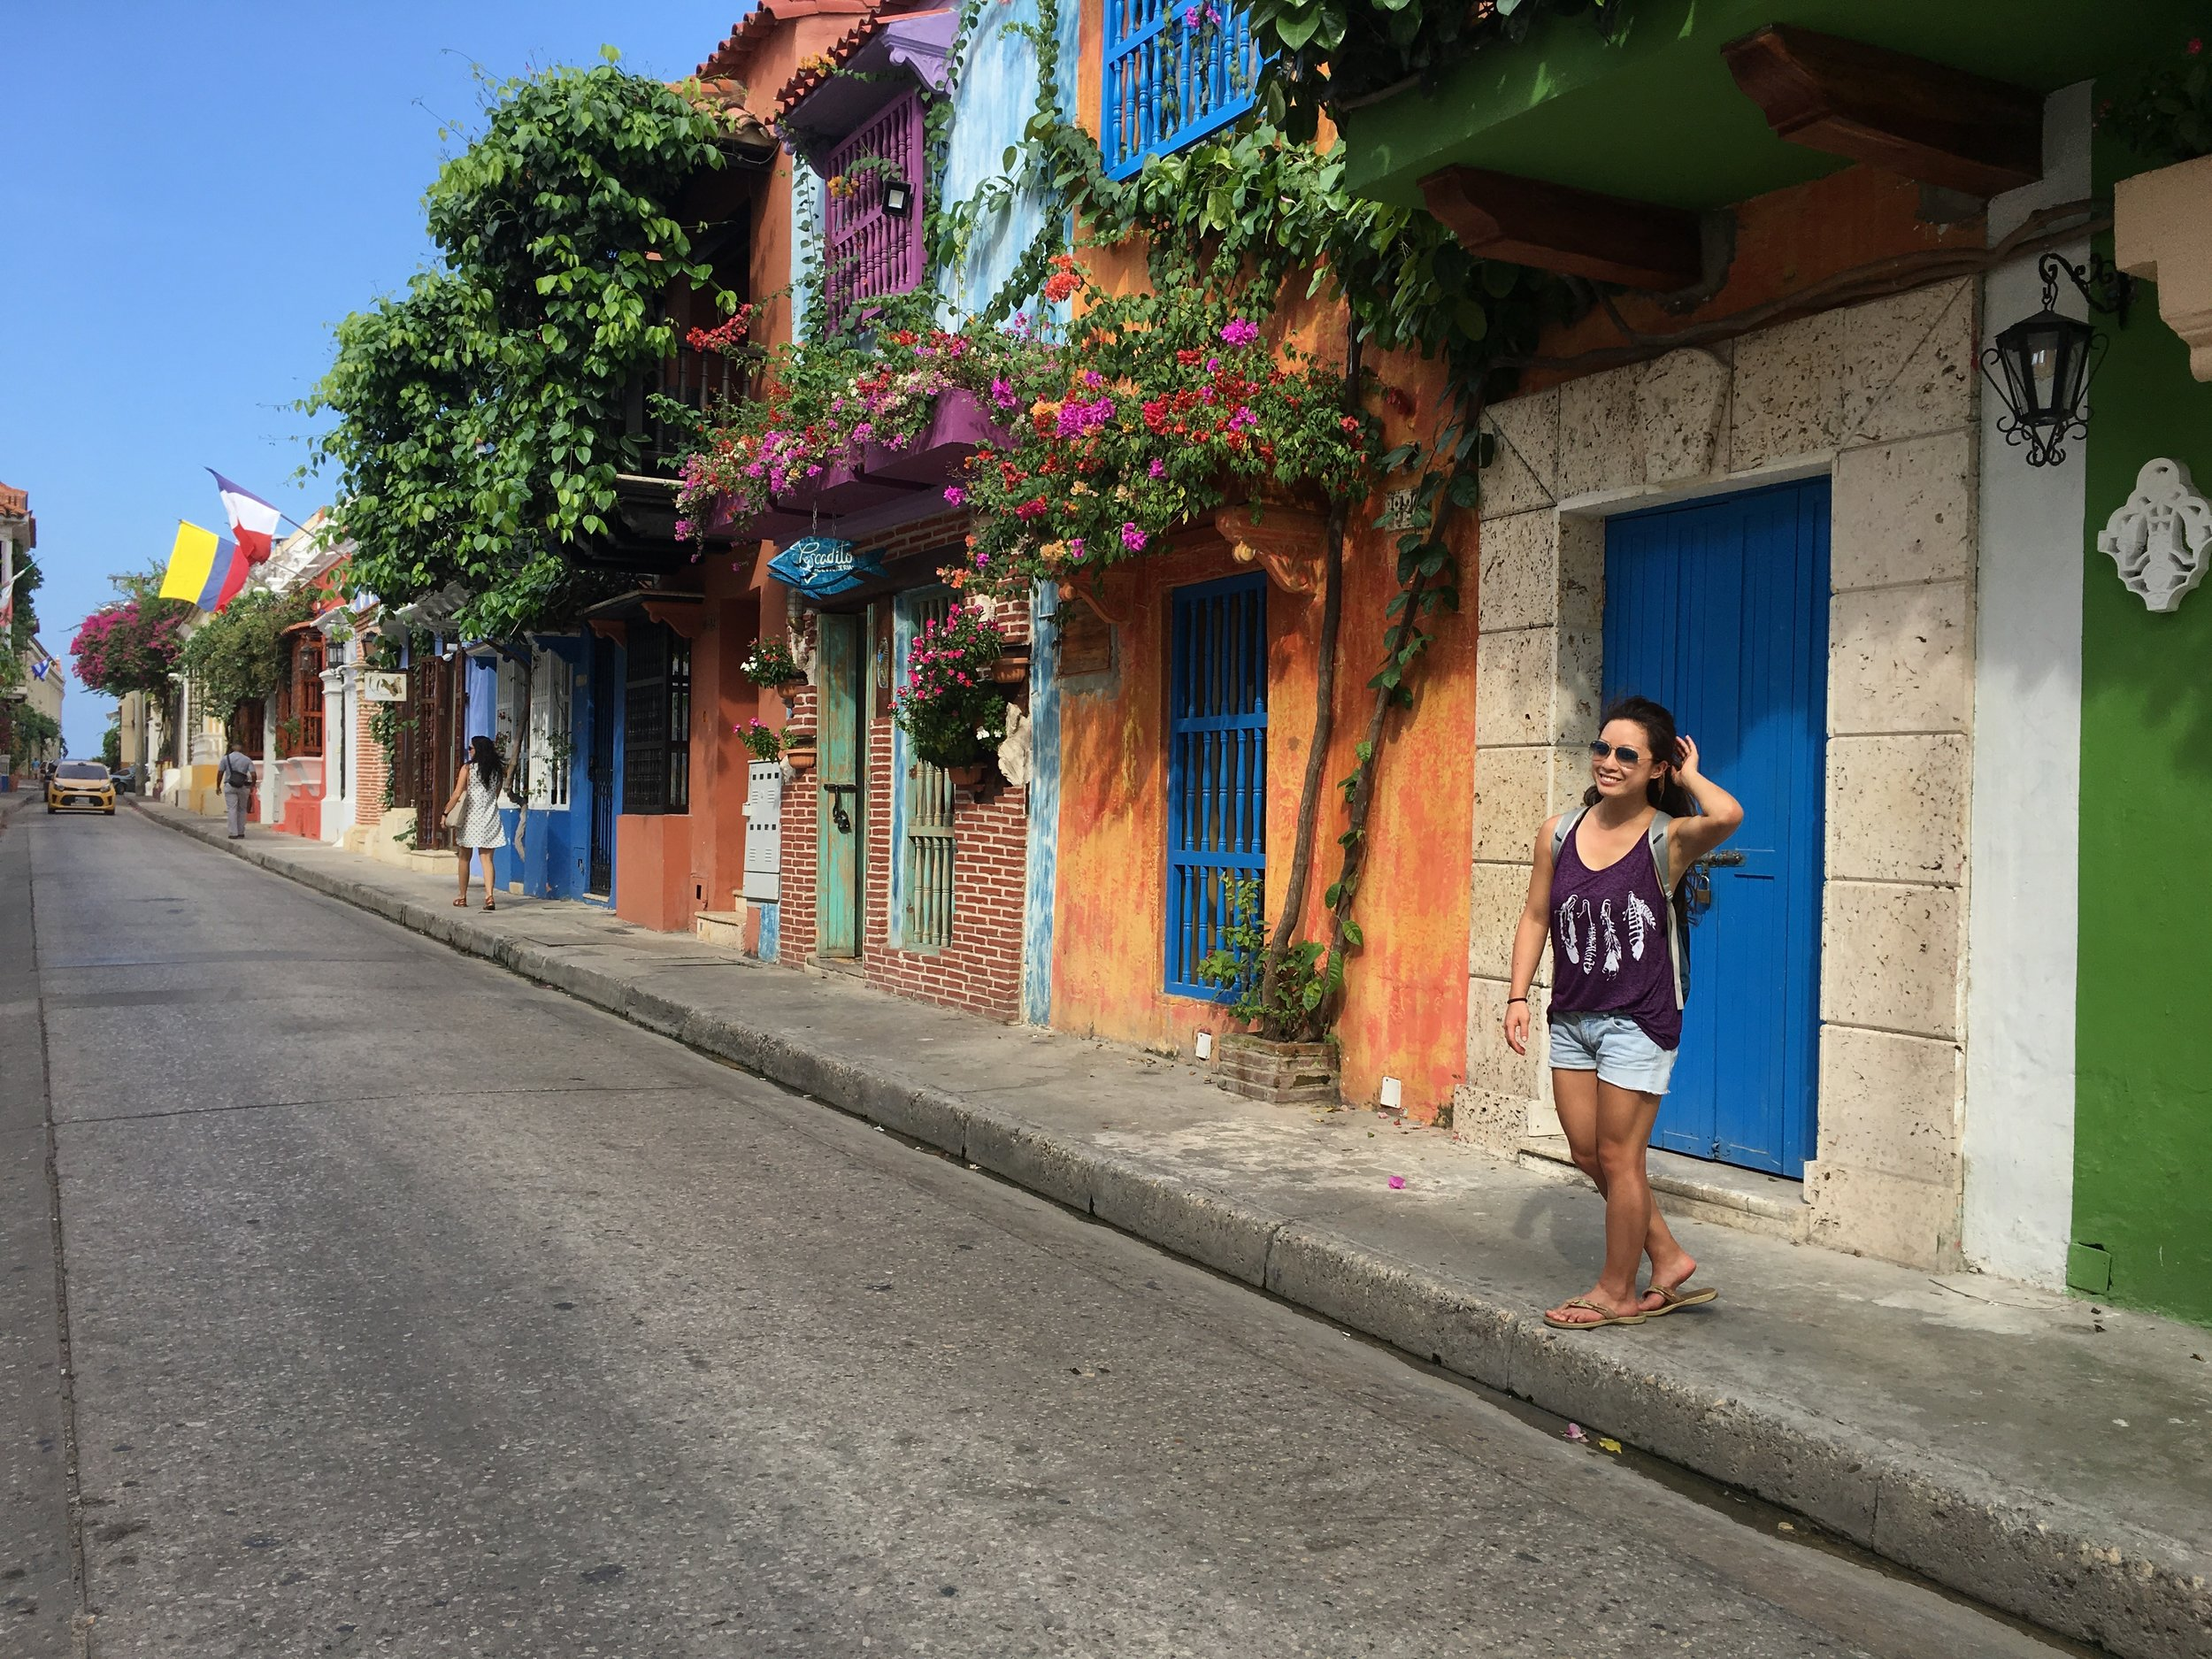 Beautiful flowers adorning colorful houses in the streets